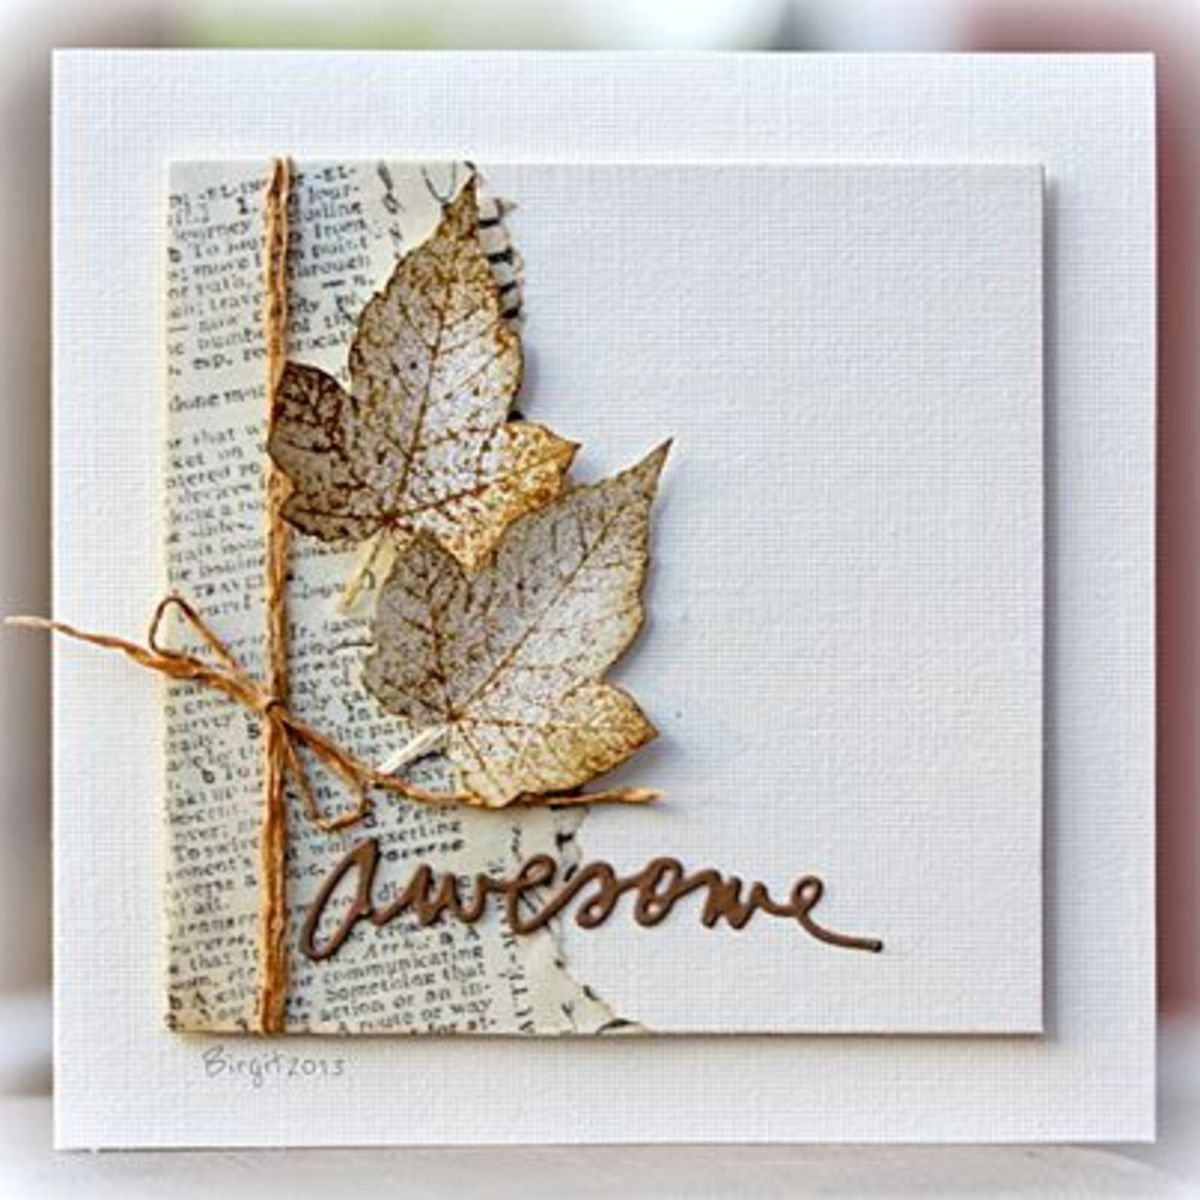 A casual exchange handmade card by scrapbooking247.com